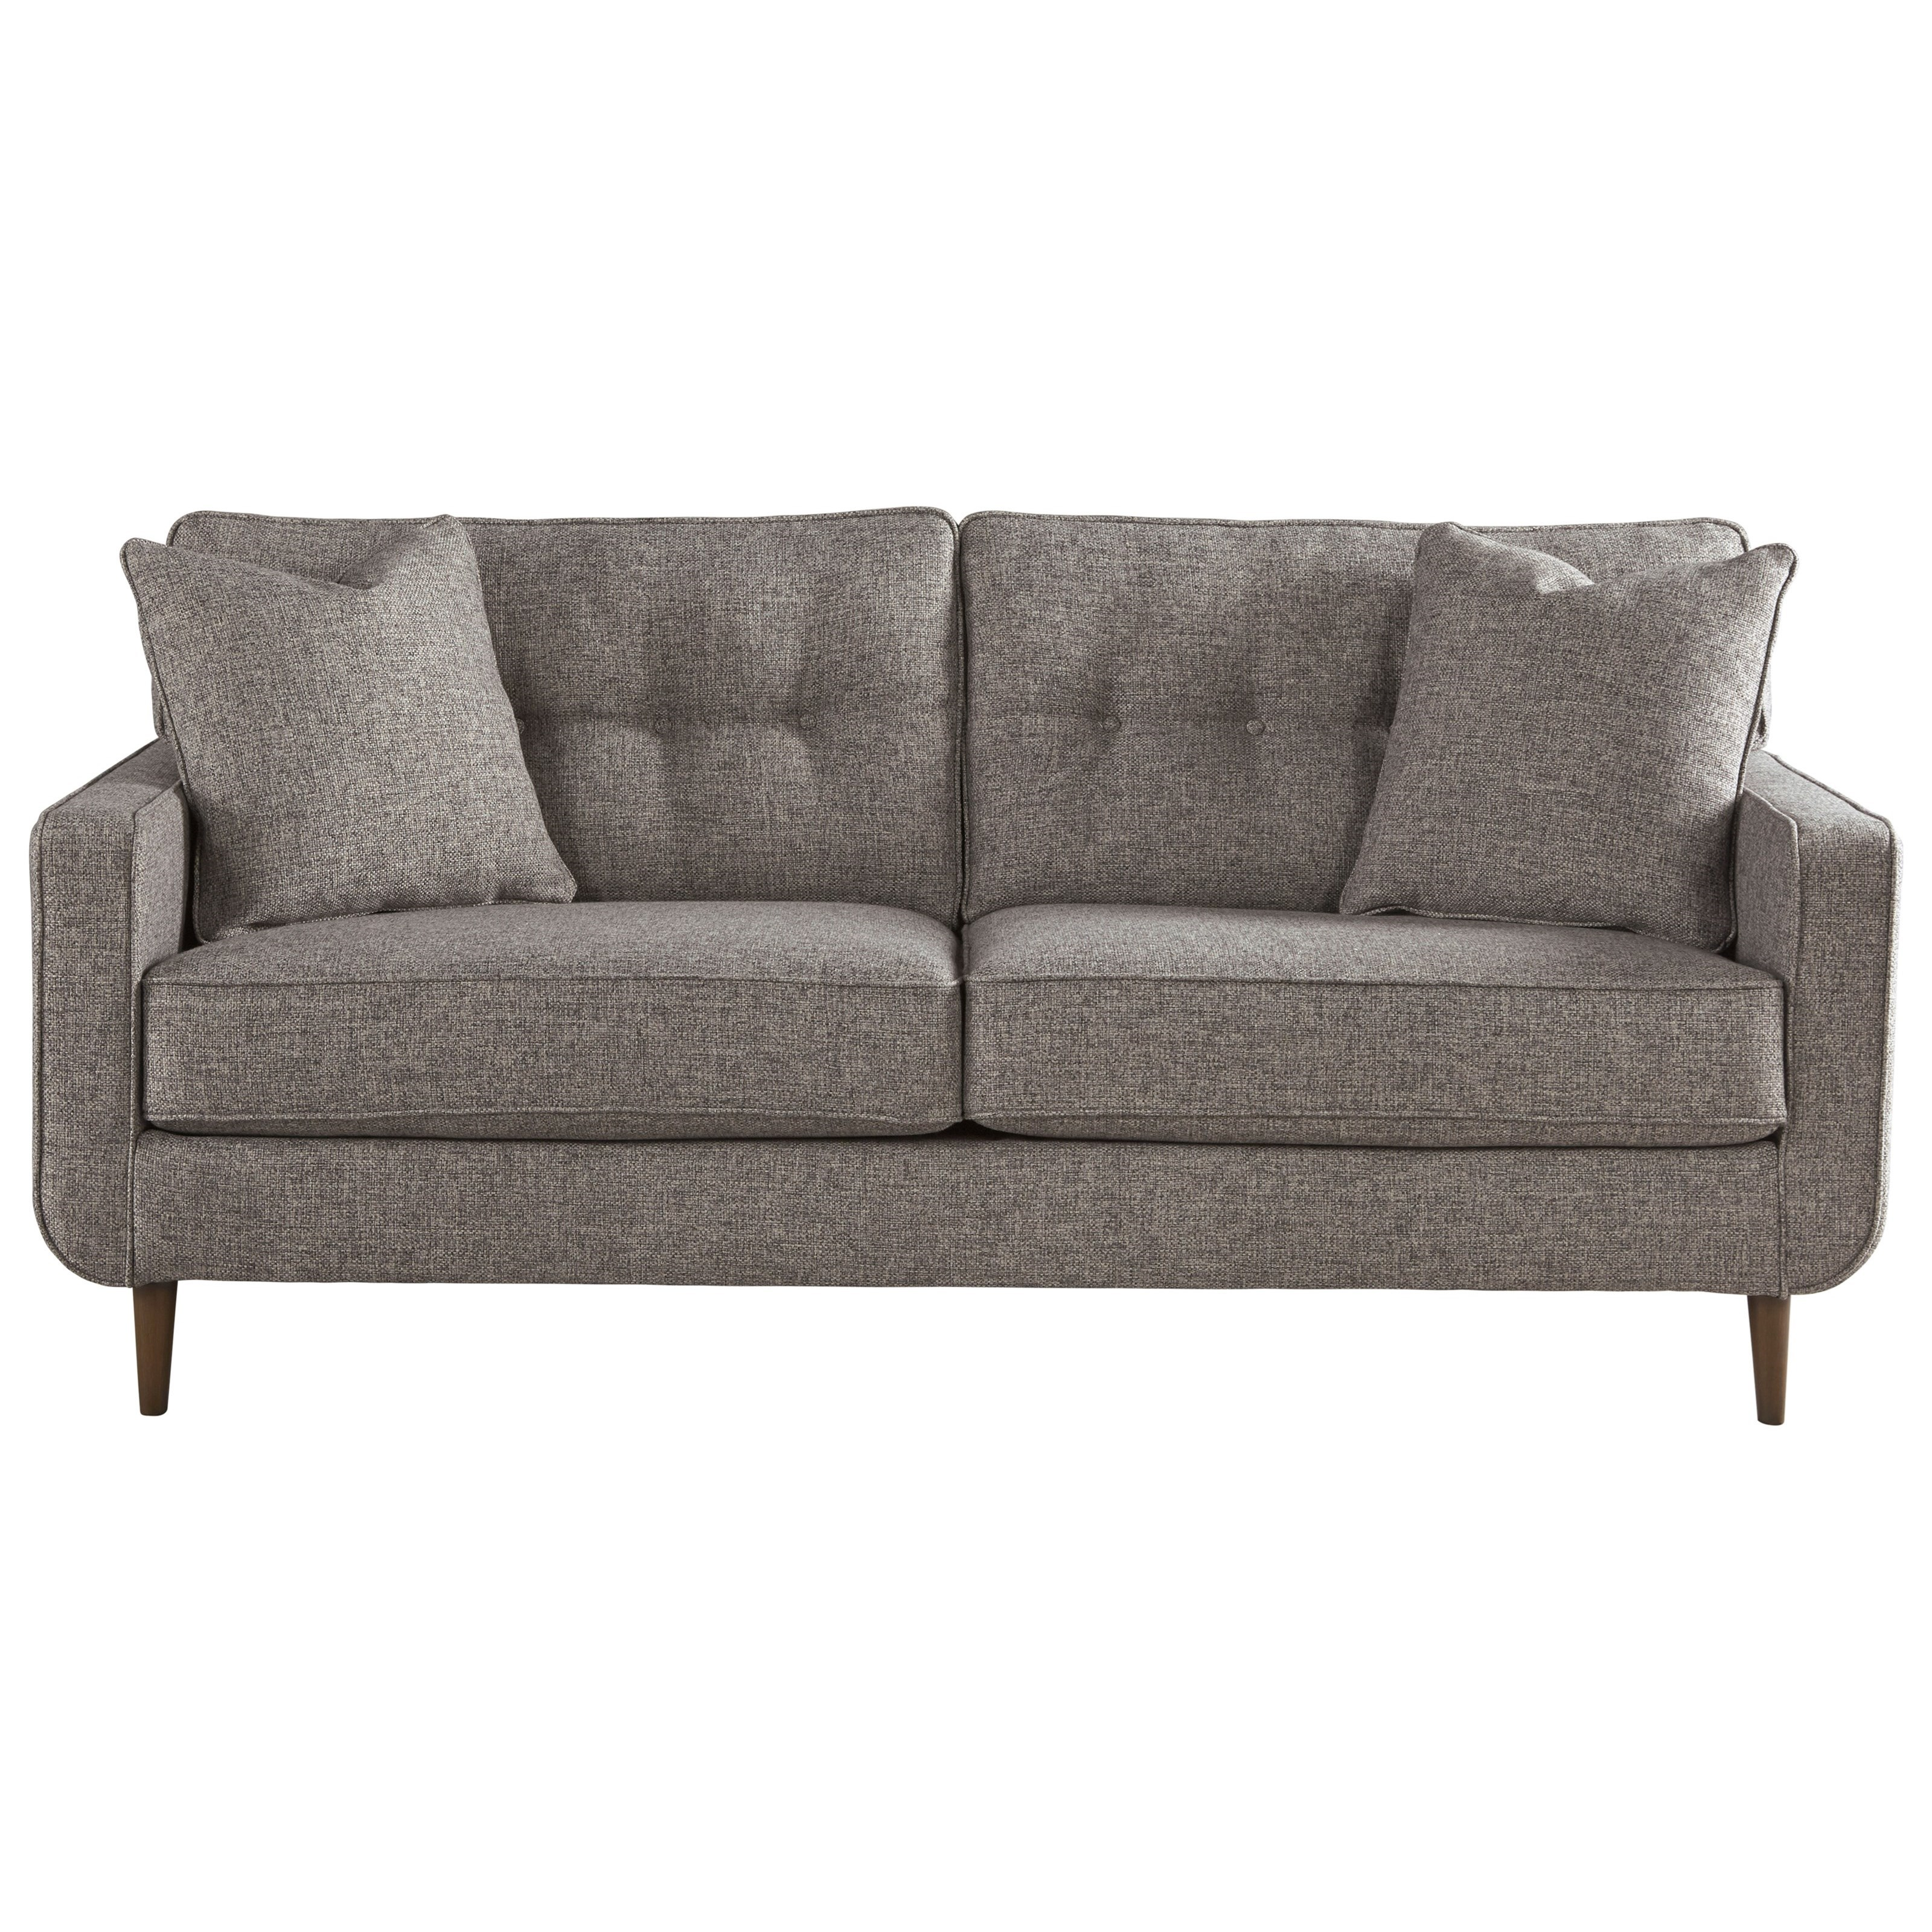 Ashley Furniture Zardoni Mid Century Modern Sofa Furniture and